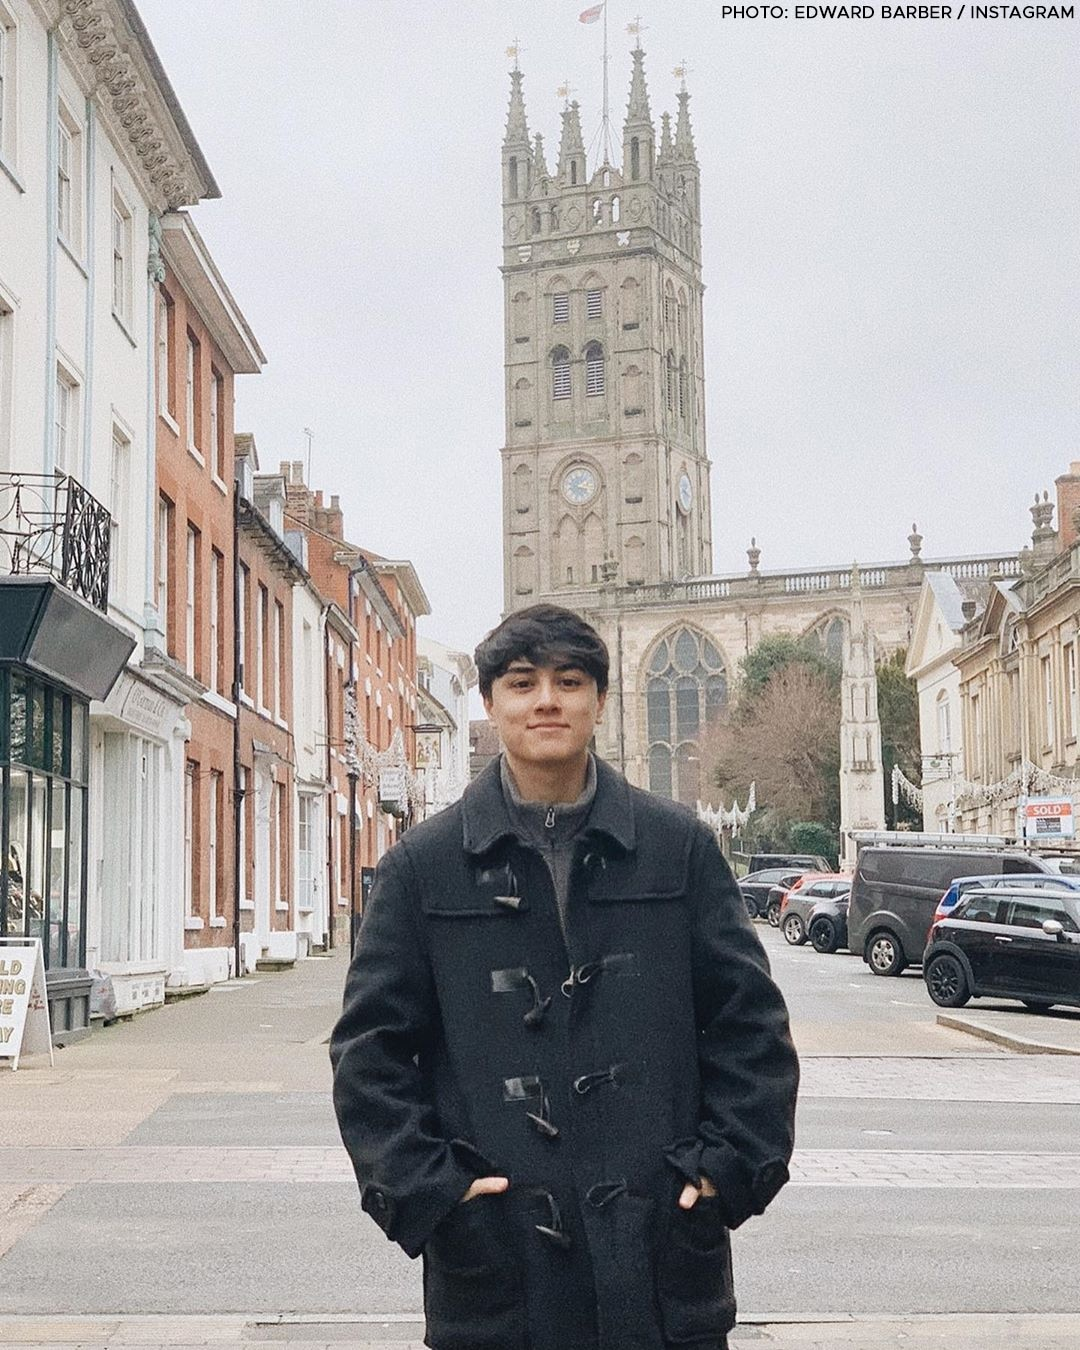 Edward Barber's most dashing moments!